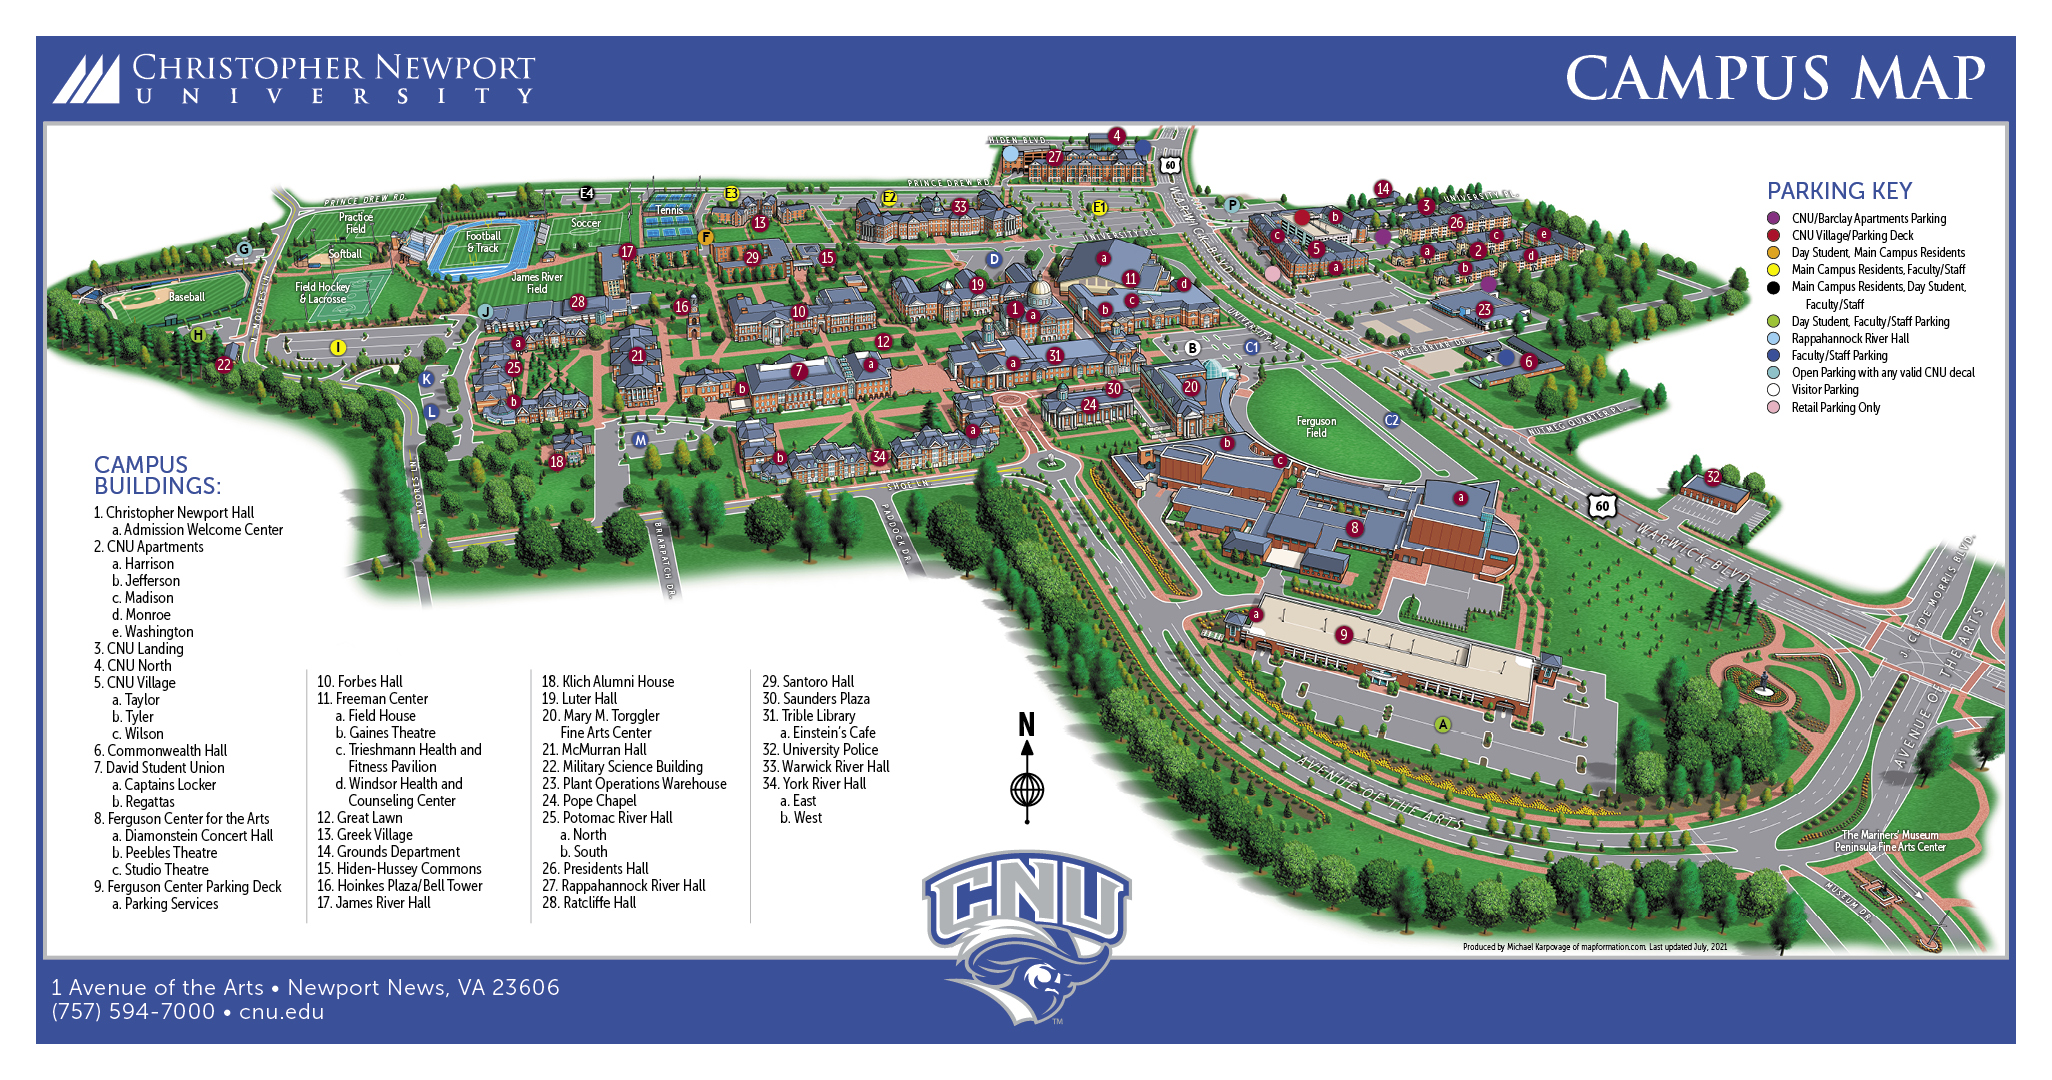 Campus Map - Visit - Christopher Newport University on